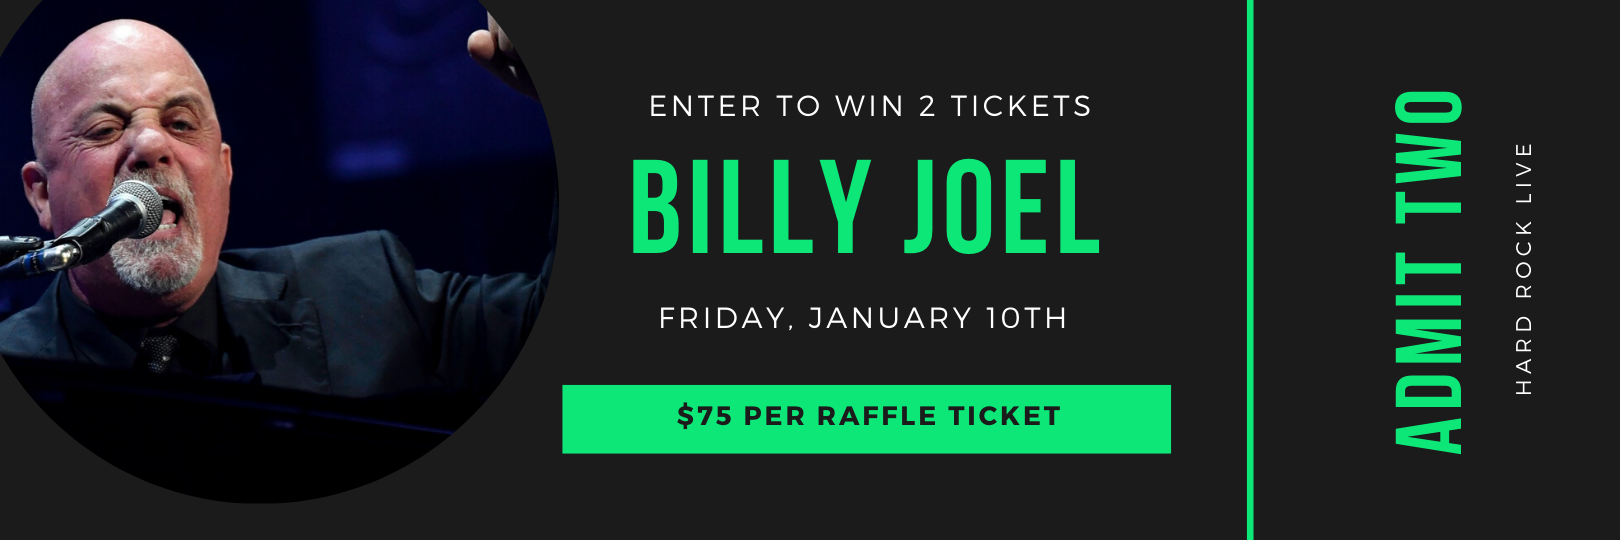 "<a href=""https://www.templebethemet.org/community/he-bros-mens-club/billy_joel_concert""